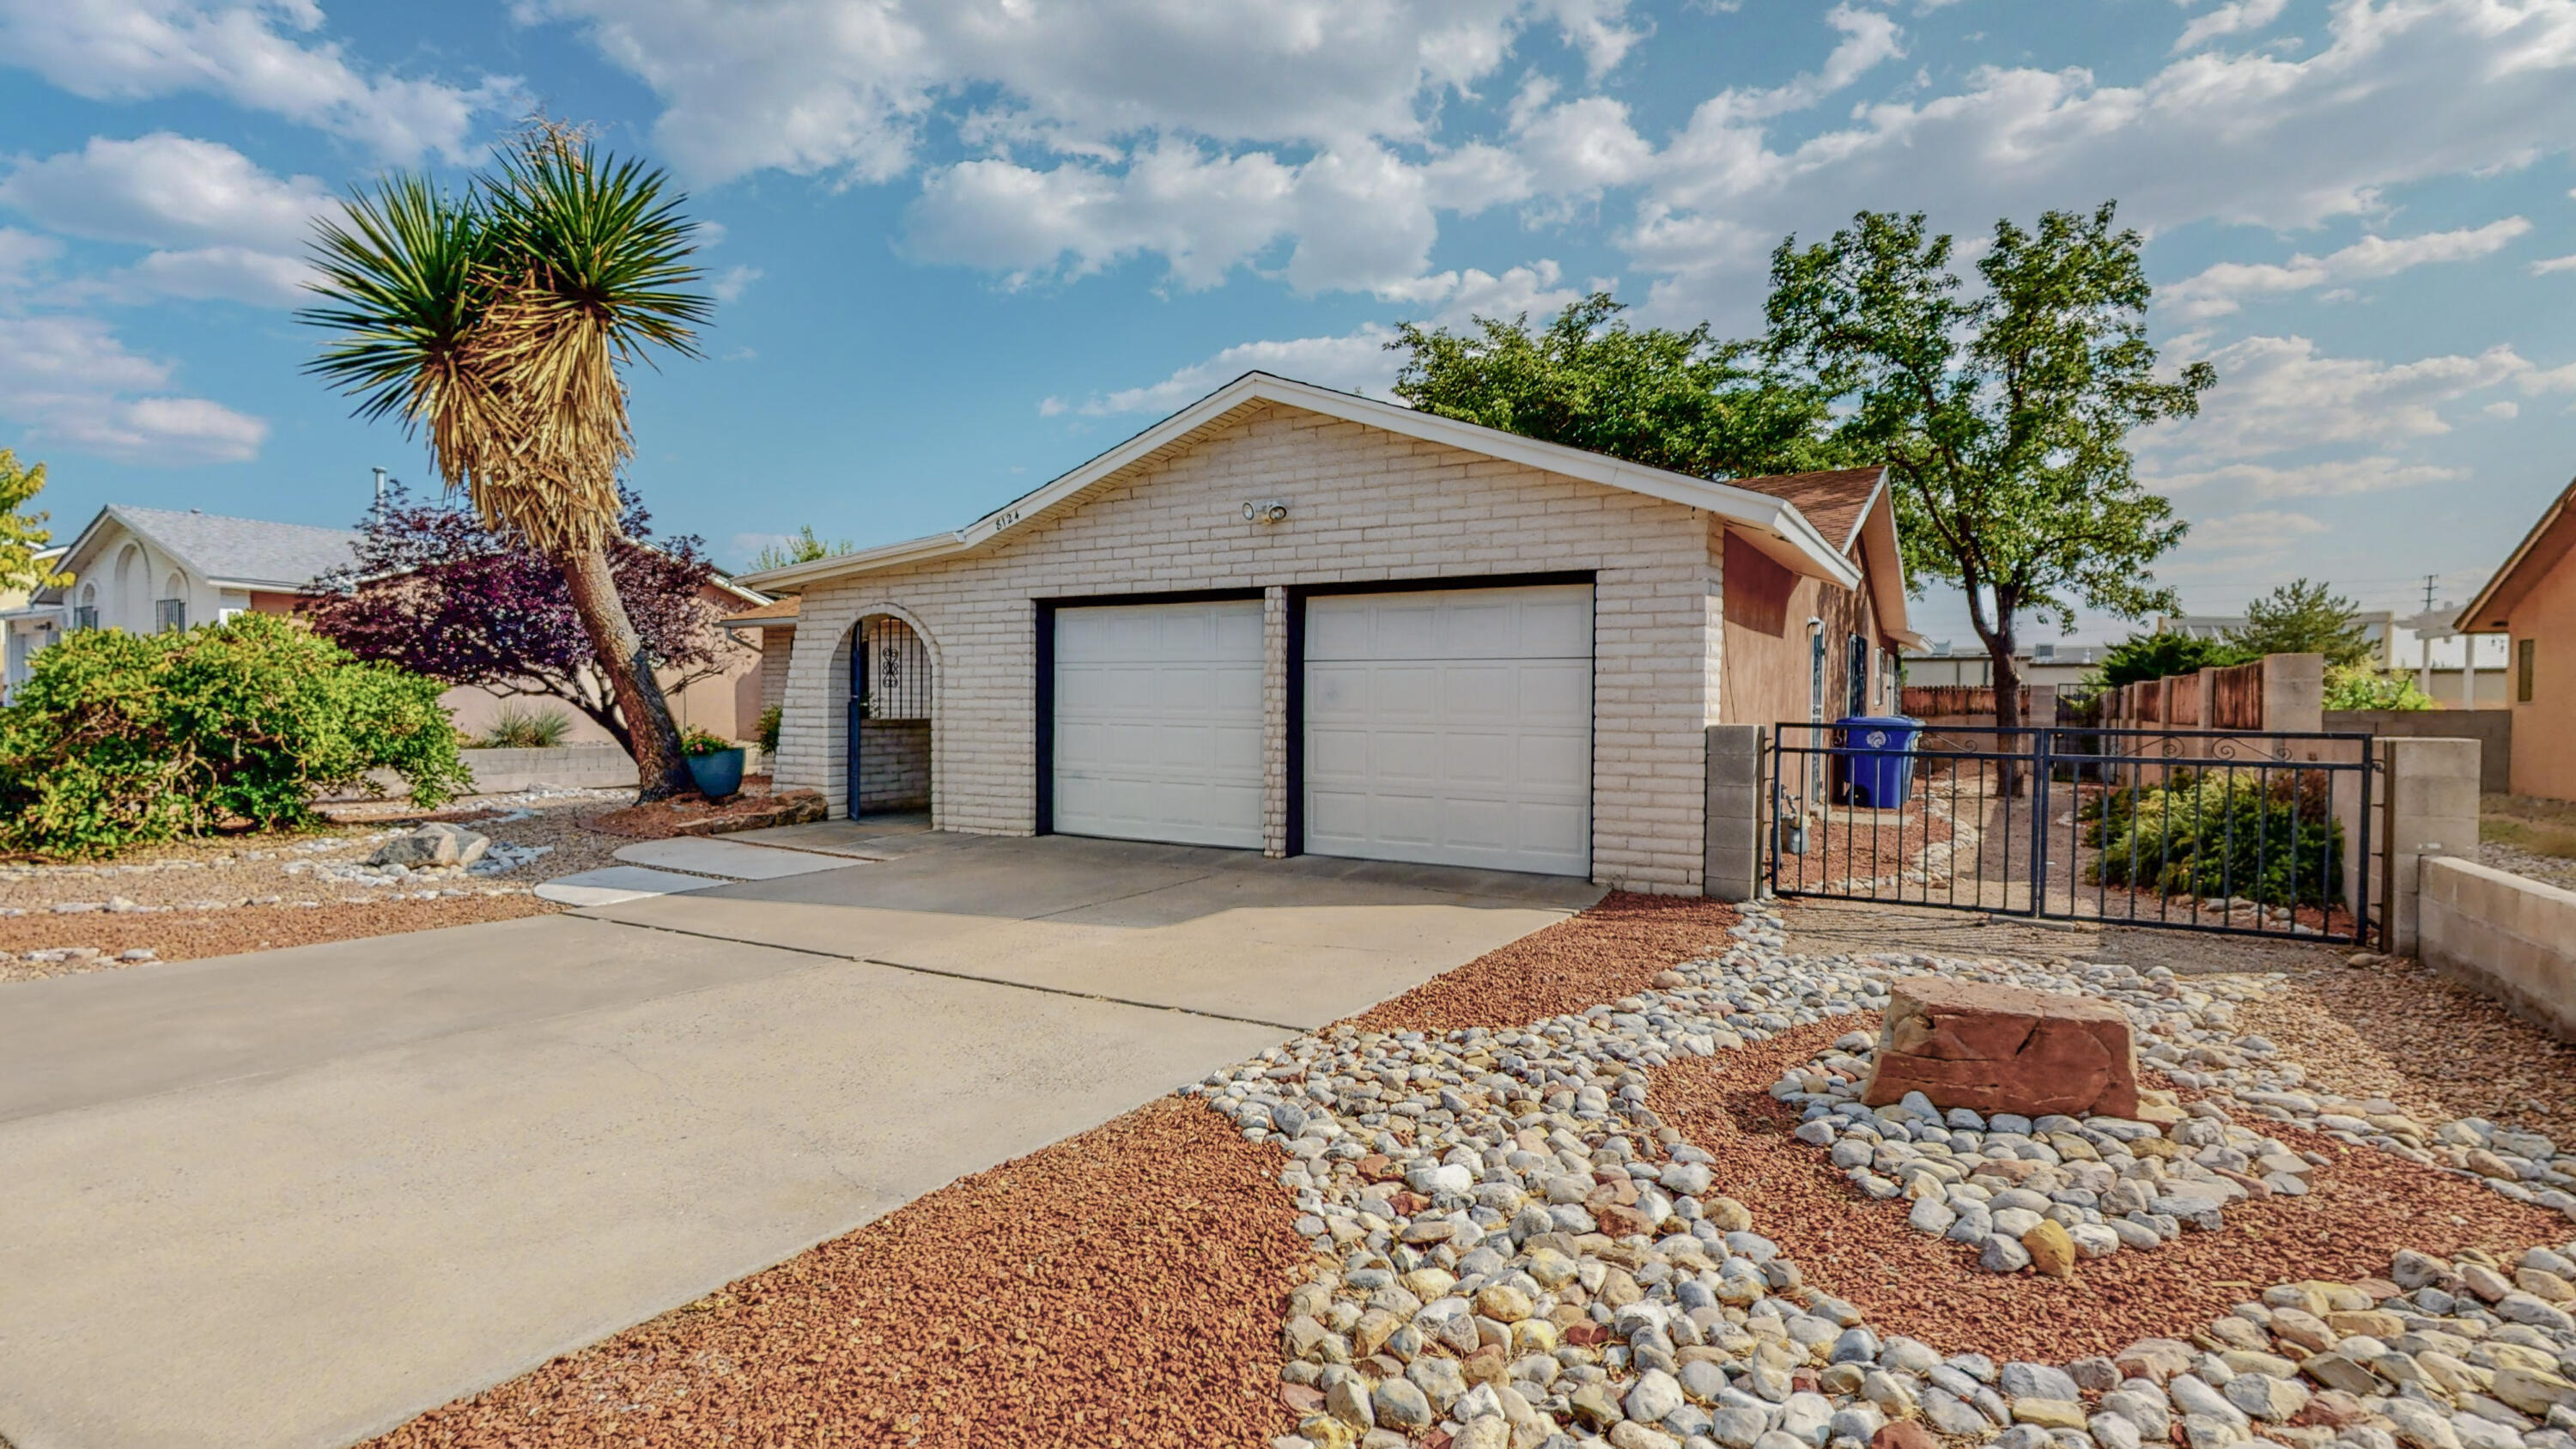 Great home in La Cueva school district! Fresh paint and newer laminate floors. Kitchen has been updated featuring Knotty Alder soft close cabinets, silestone counter tops and built in work space.  3 living areas with endless possibilities.  Close to shopping, parks, dining plus easy access to I-25.